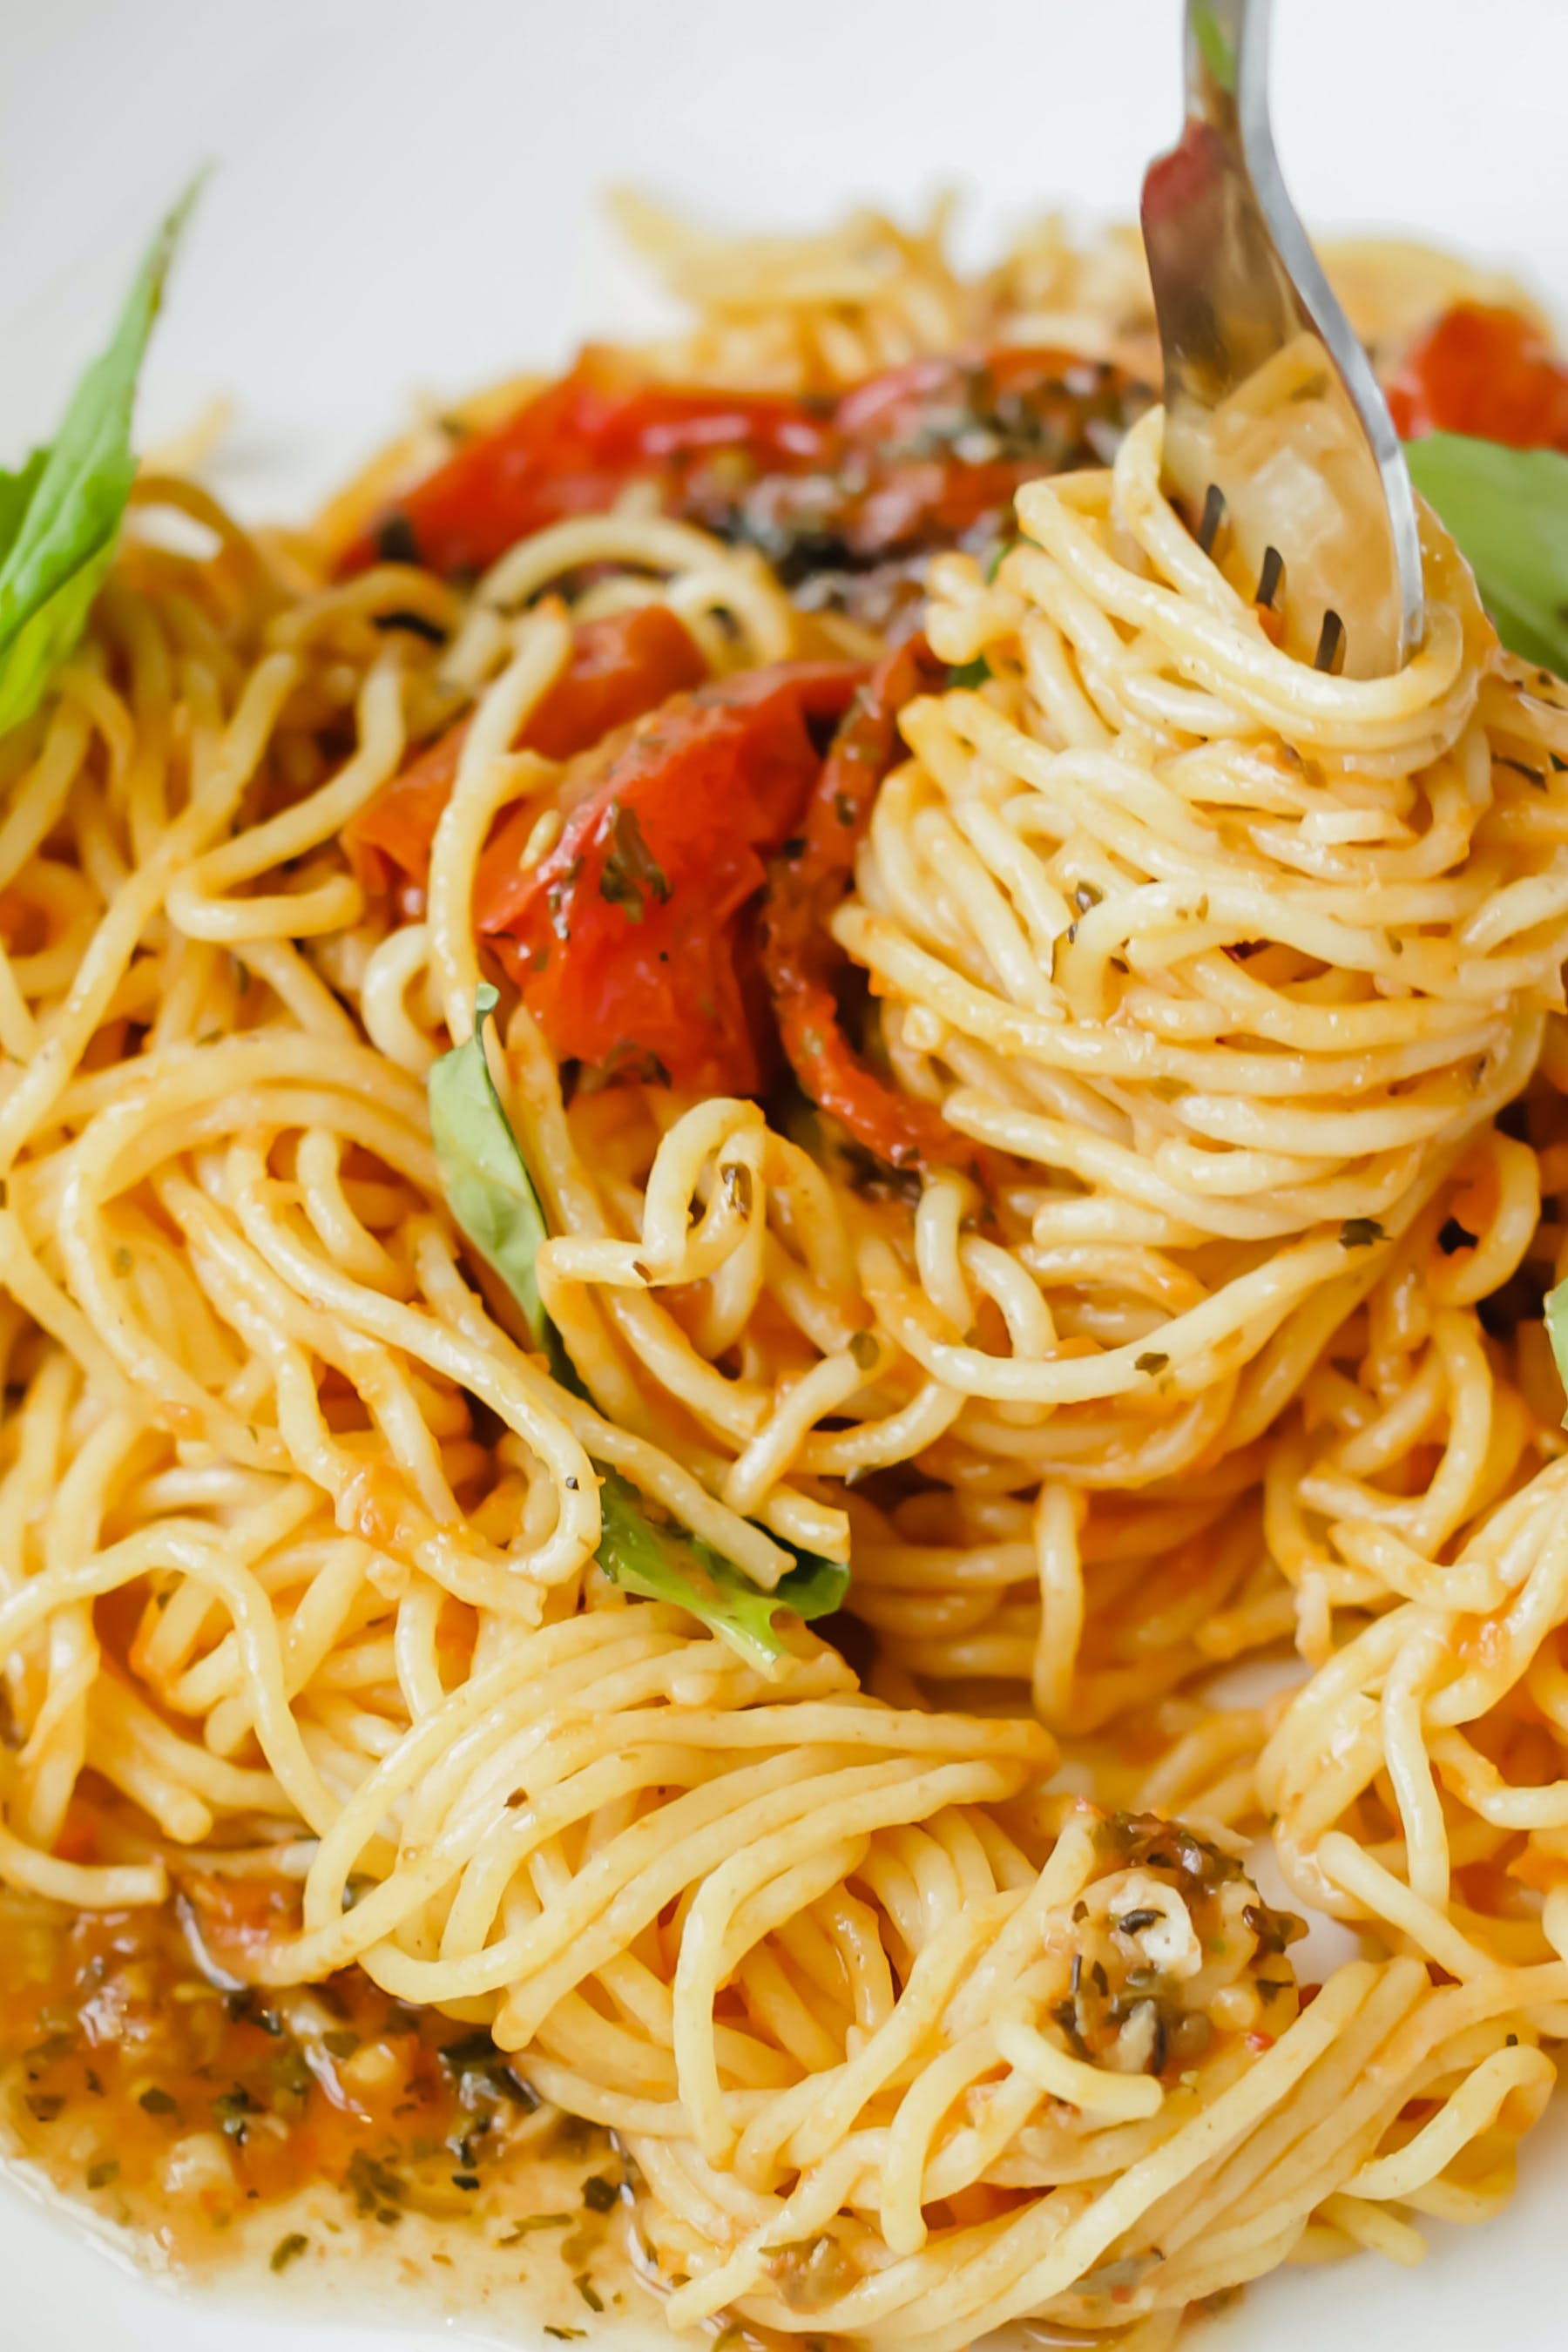 a close up of pasta in a white dish